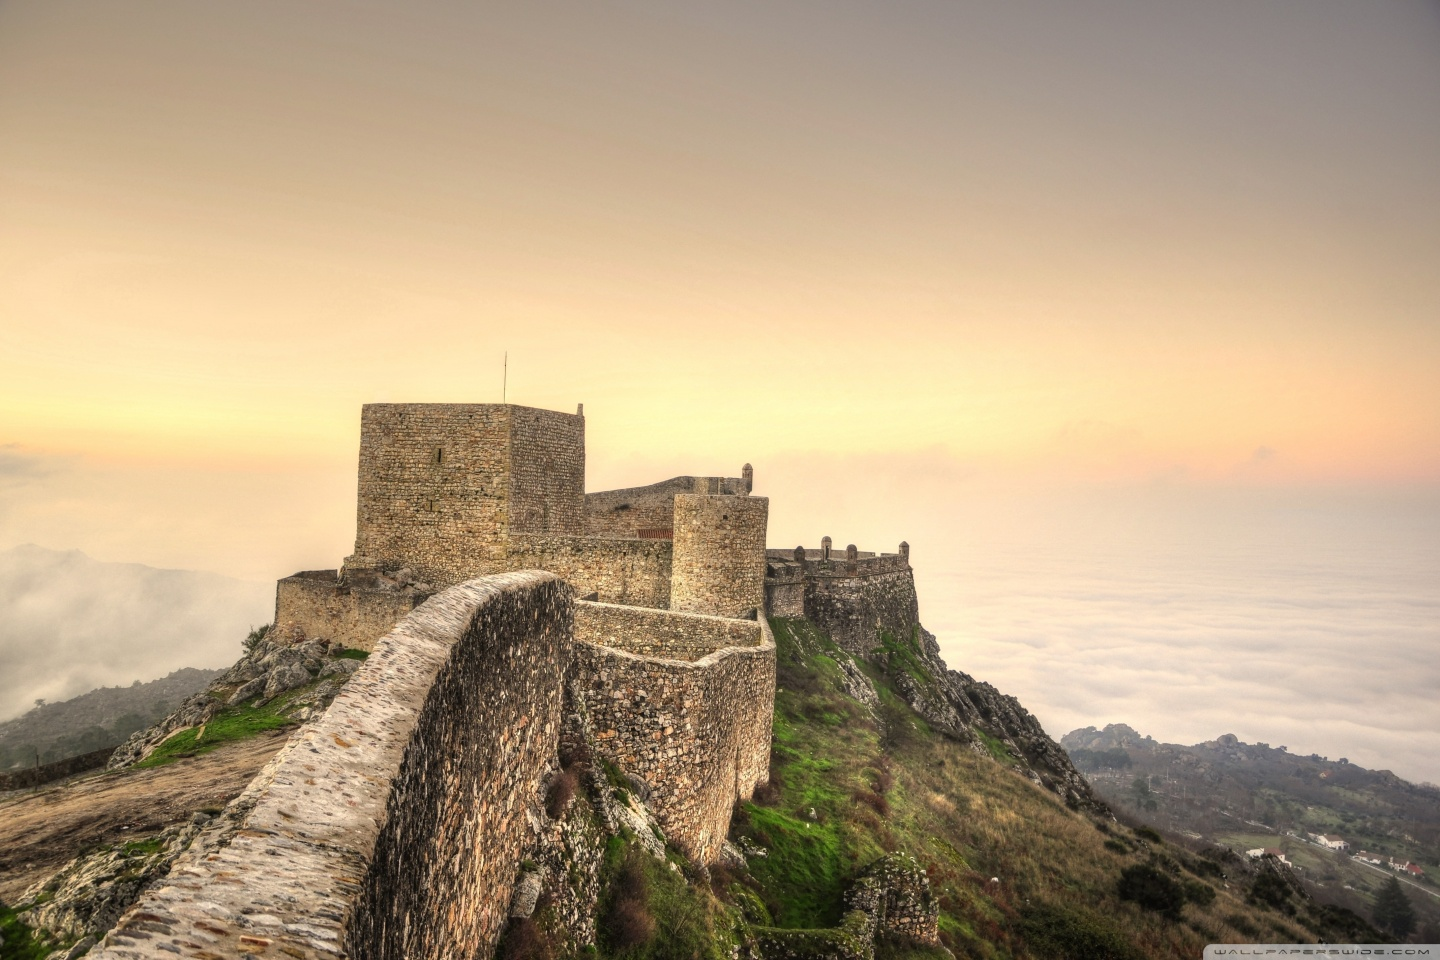 Fortress 4K HD Desktop Wallpaper for 4K Ultra HD TV Wide 1440x960